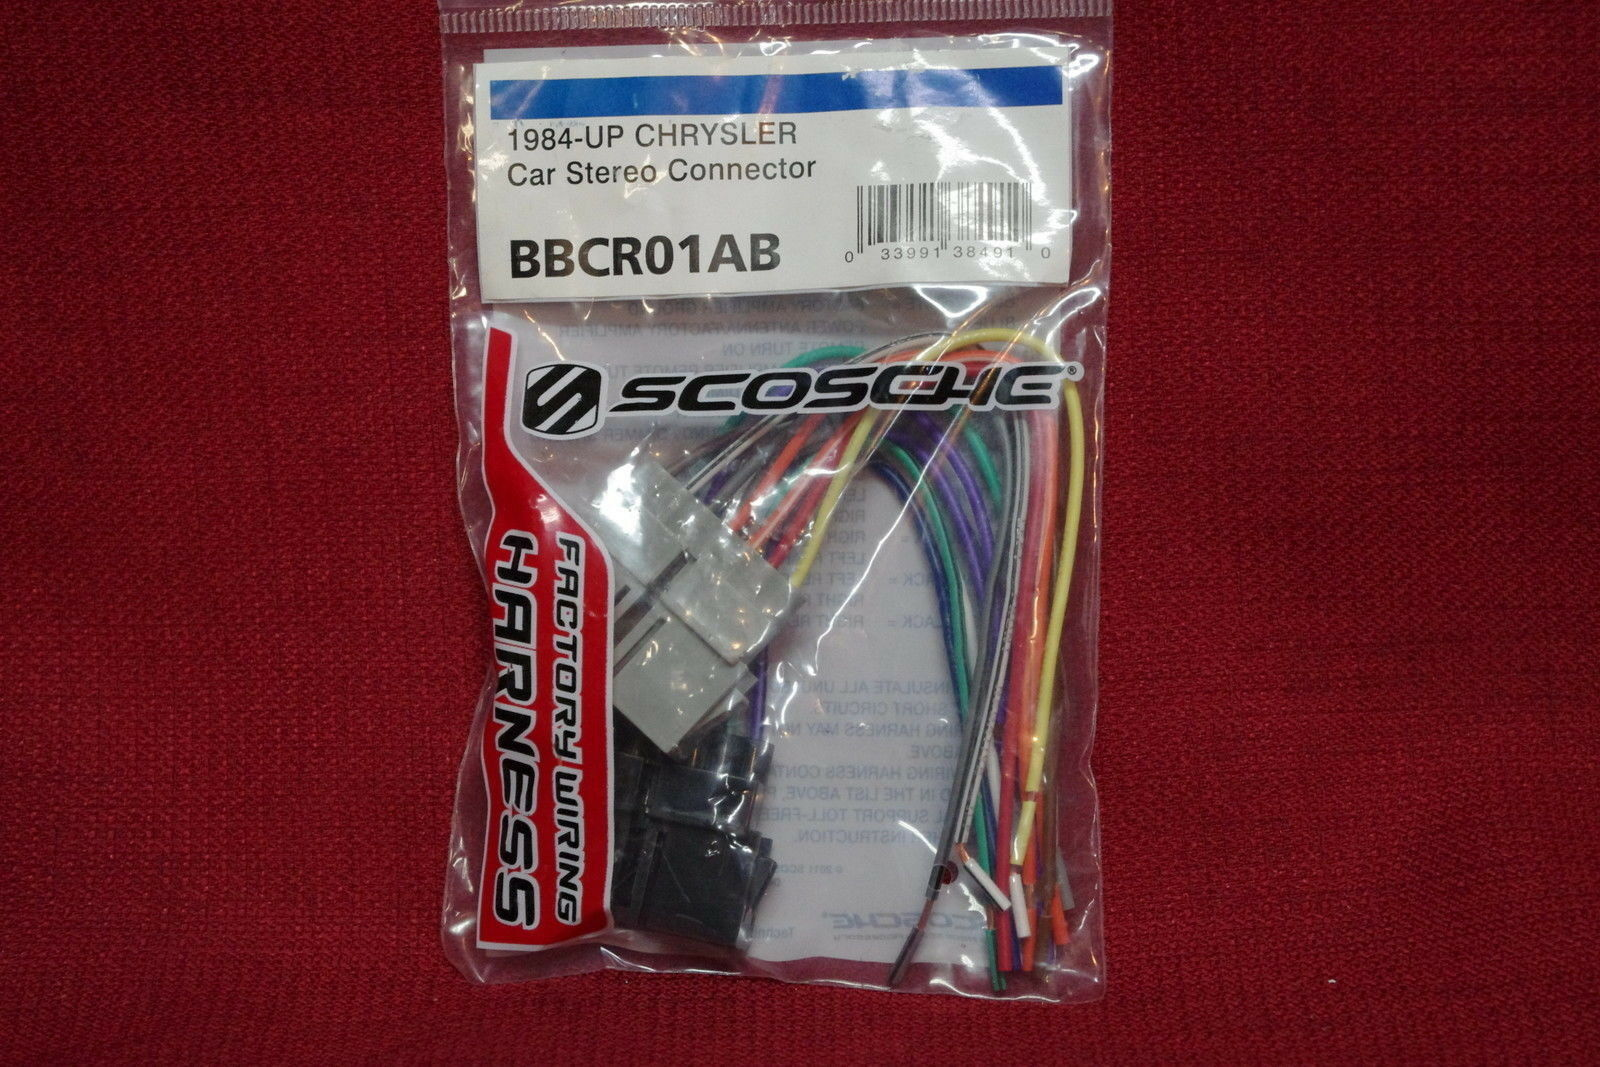 Scosche Car Radio Bbcr01ab For Chrysler Dodge 1984 Up Harness New Automotive Wiring 1 Of 4free Shipping